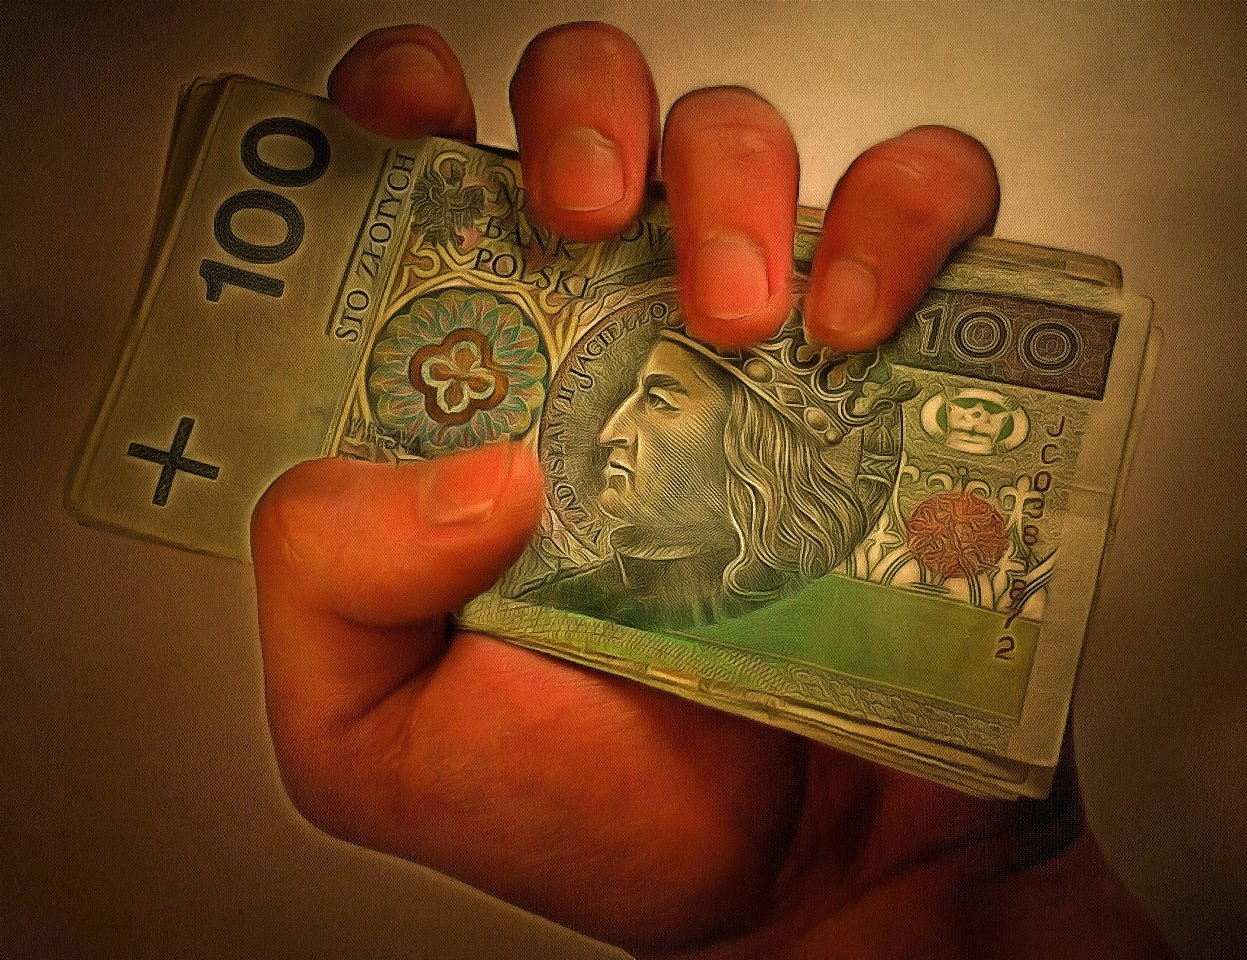 Dollar image, Dollar free images, Dollar free stock images, Money Picture, Free Money Picture - Public Domain Images - Stock Free Images !